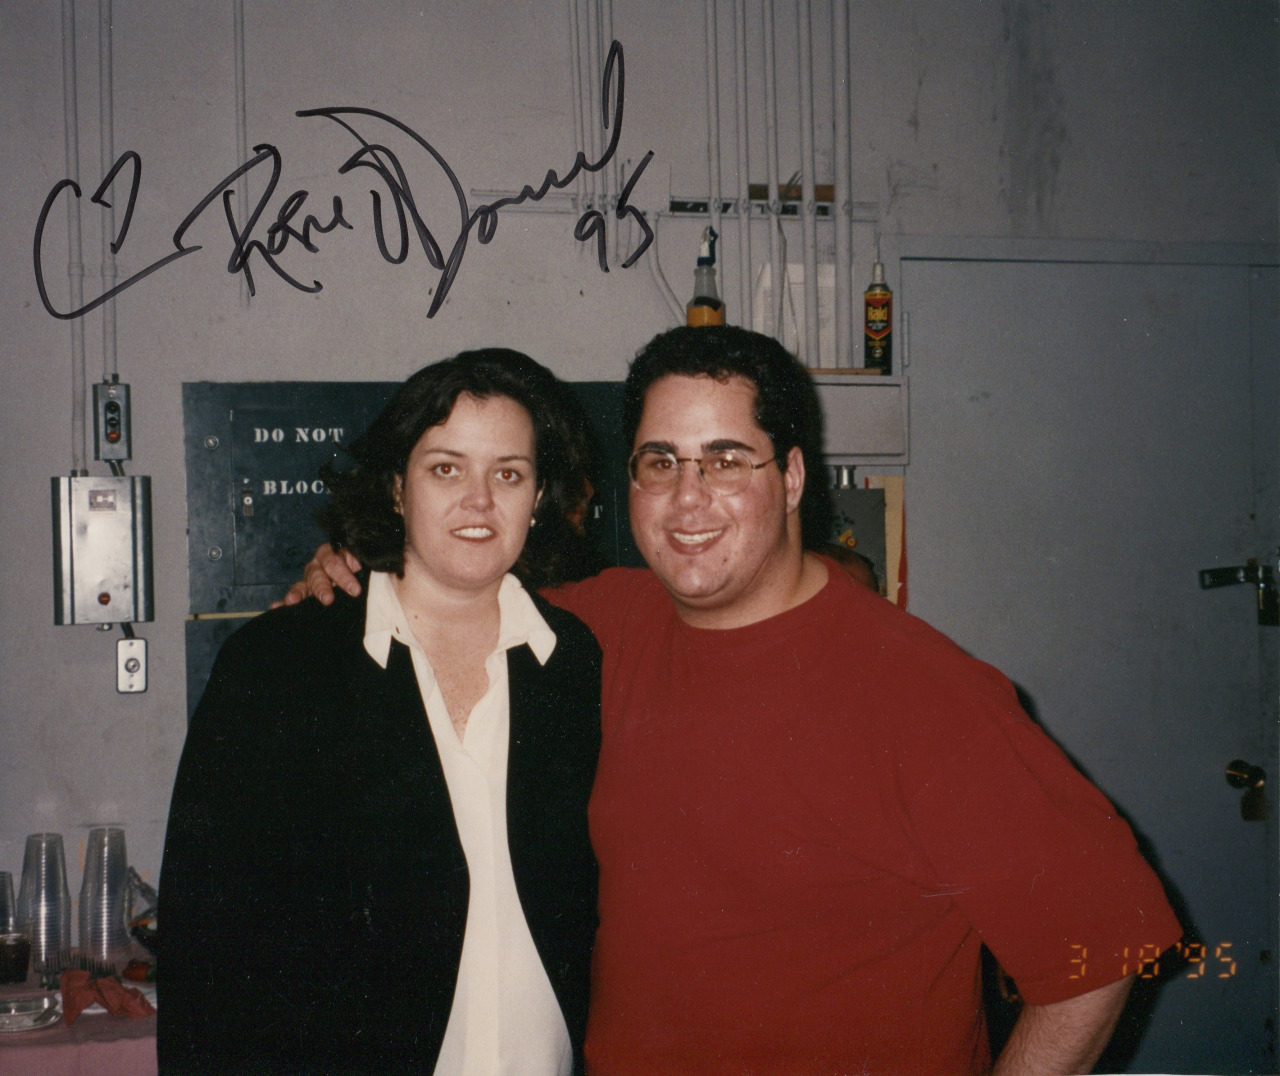 Rosie O'Donnell and Geno